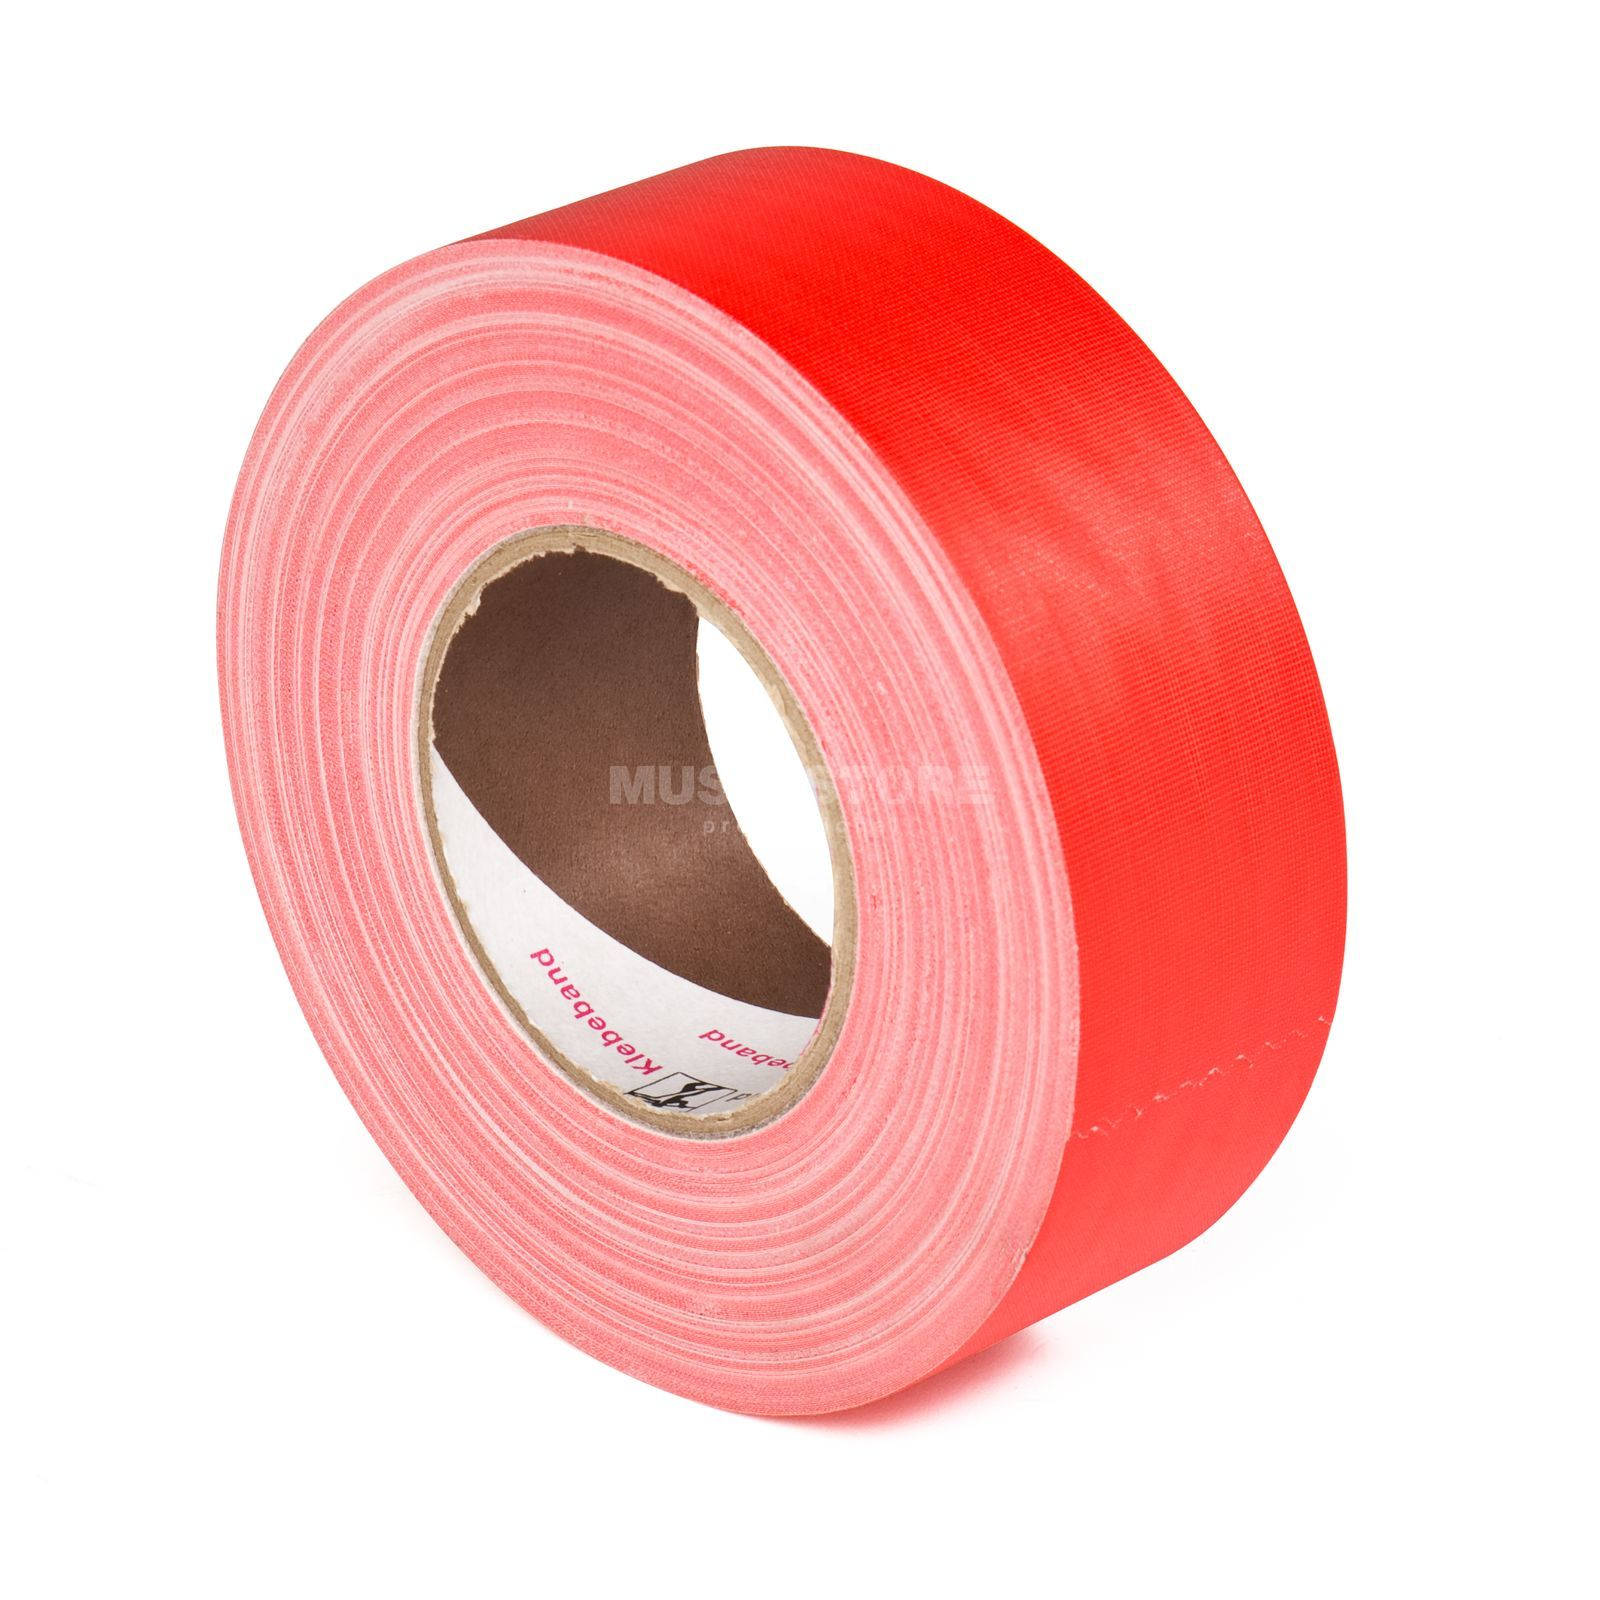 Gerlinger Adhesive Tape 258 Red 50m Product Image